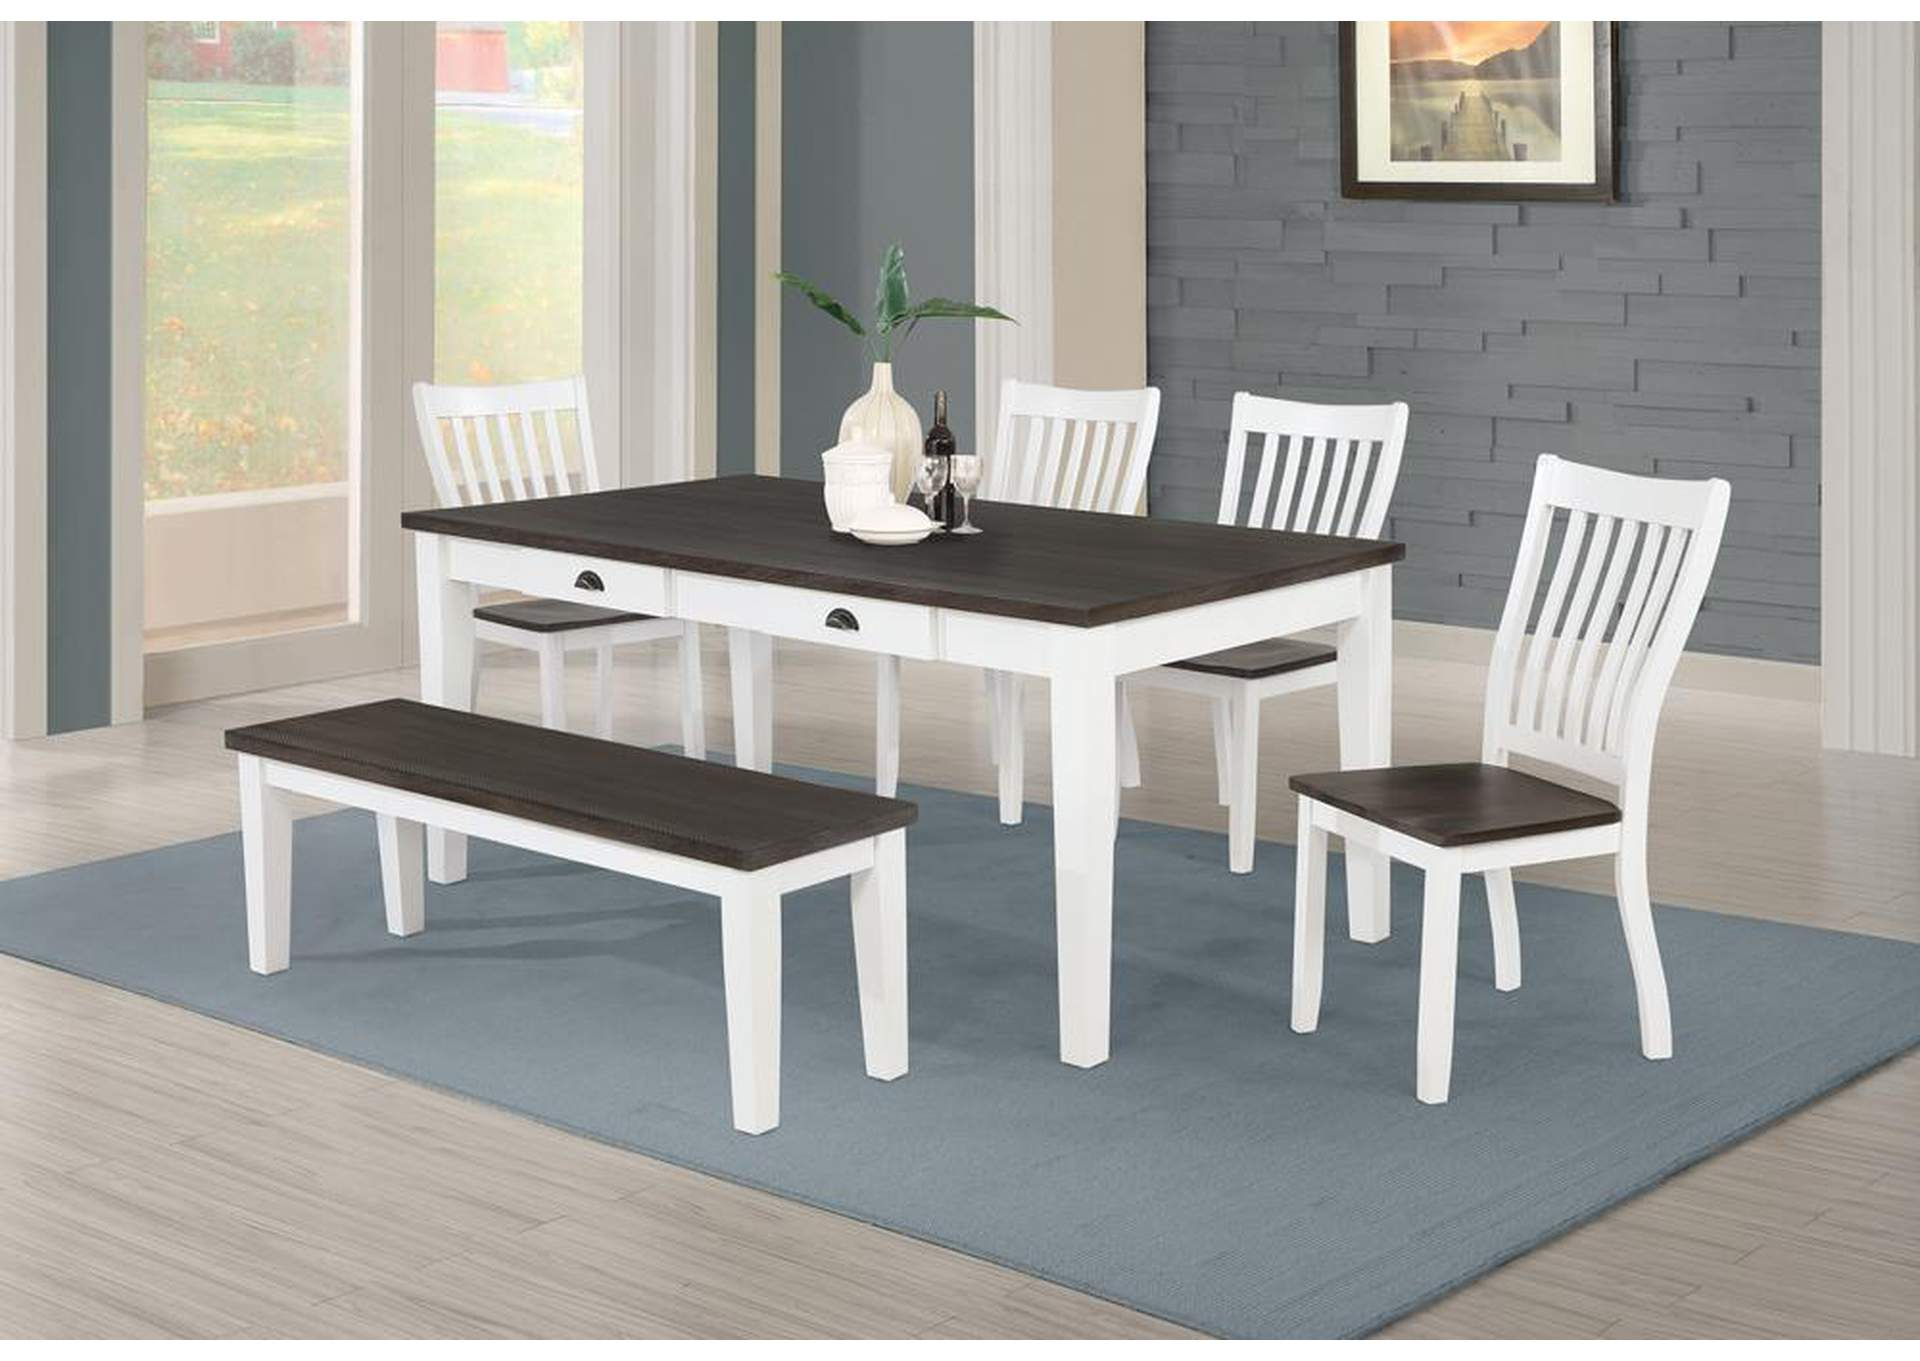 Kingman Espresso & White Bench,Coaster Furniture